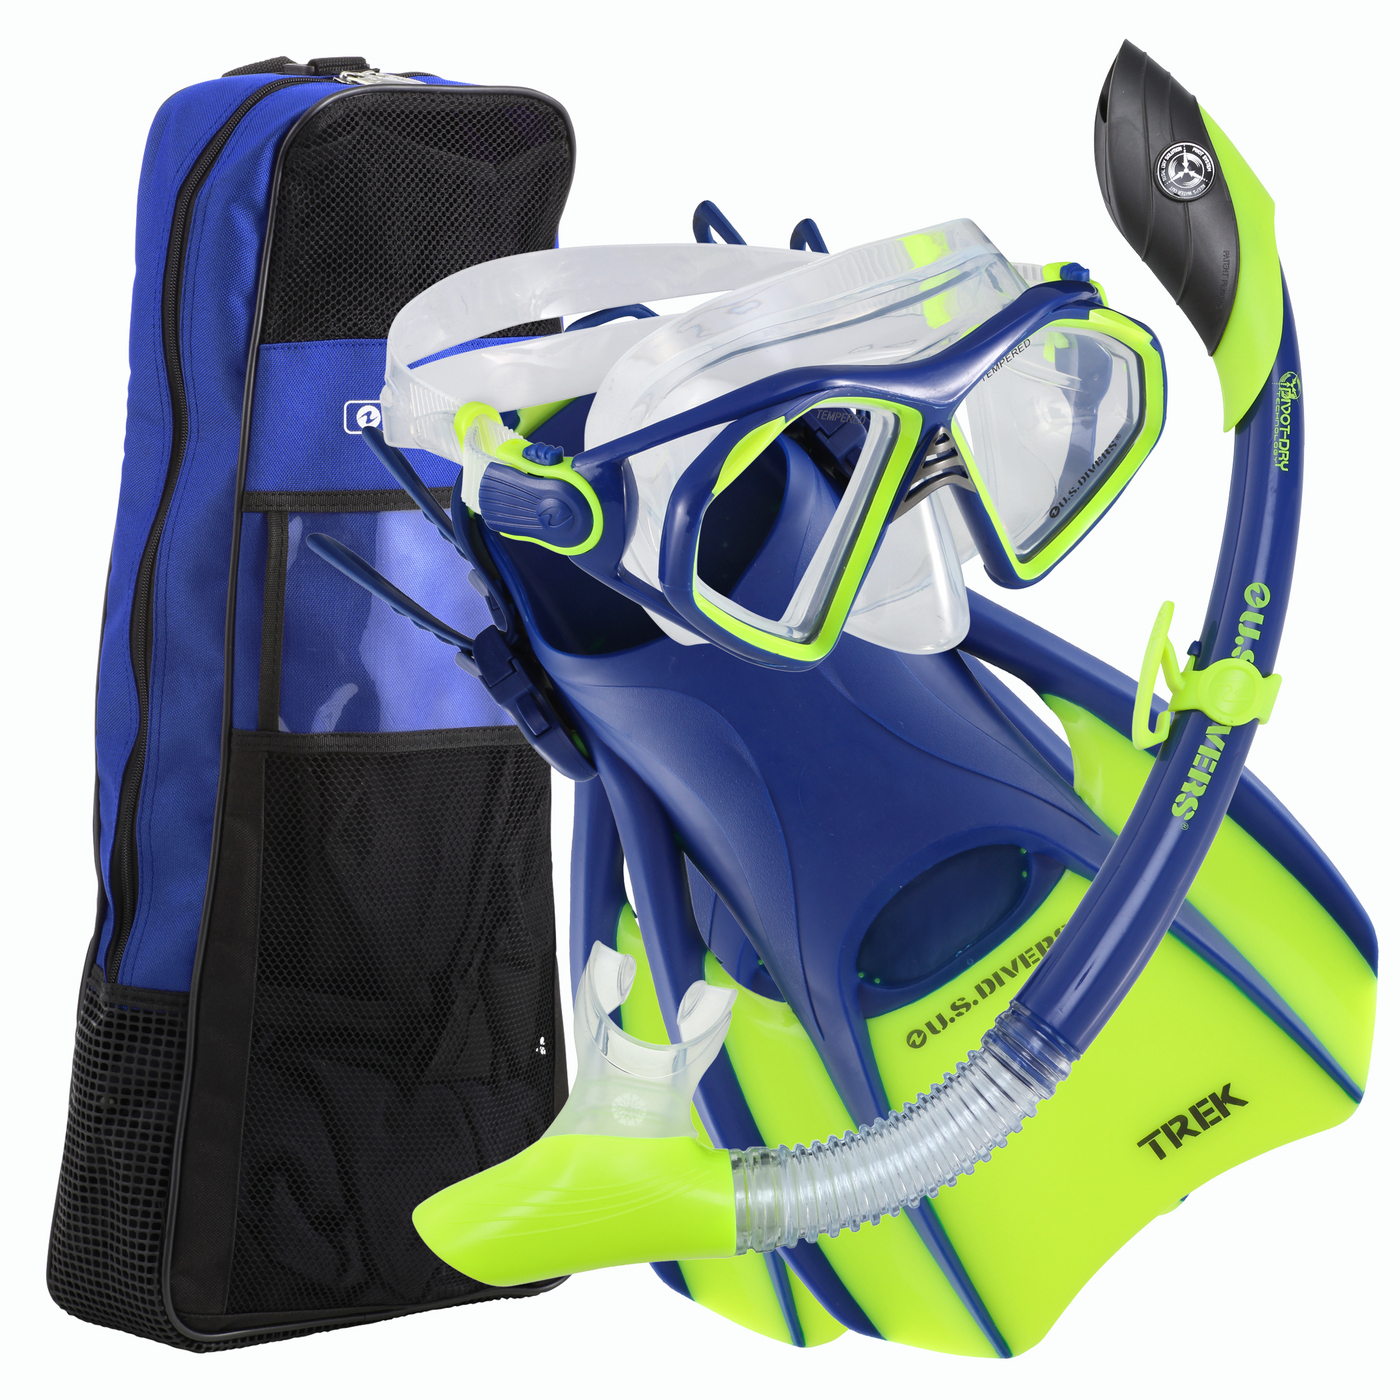 Us Divers Admiral LX Island Dry LX Trek Snorkel Set with Fins